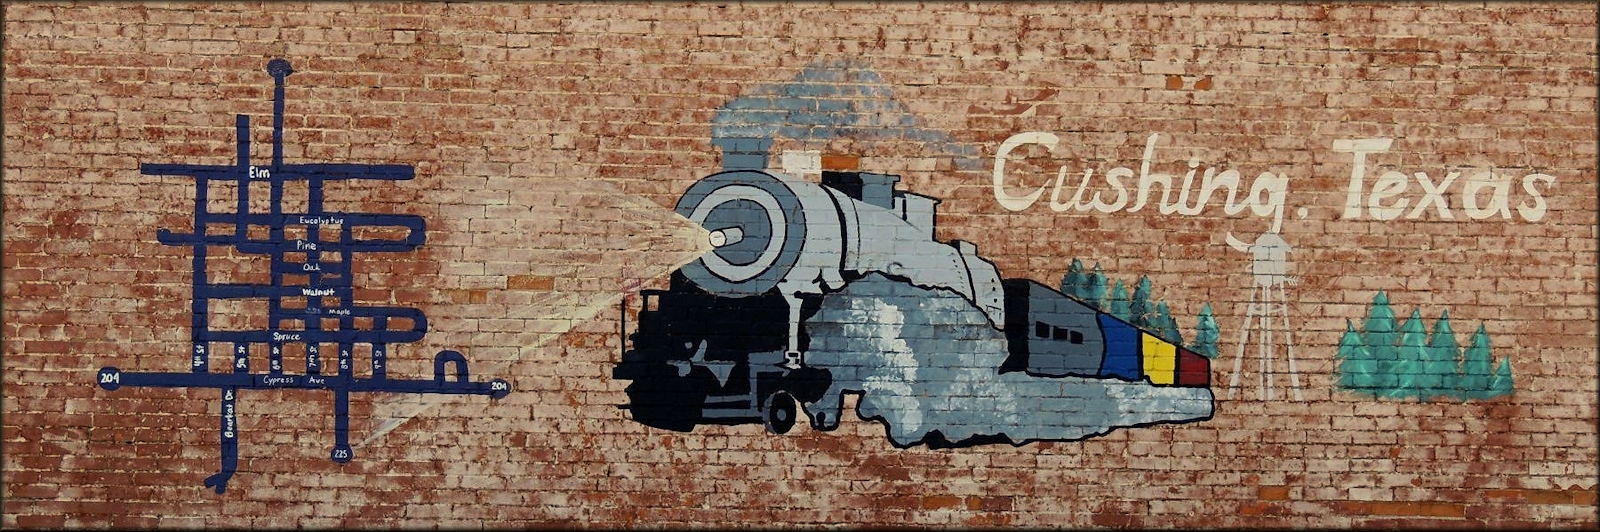 The Maple St. Mural in Downtown Cushing, Texas